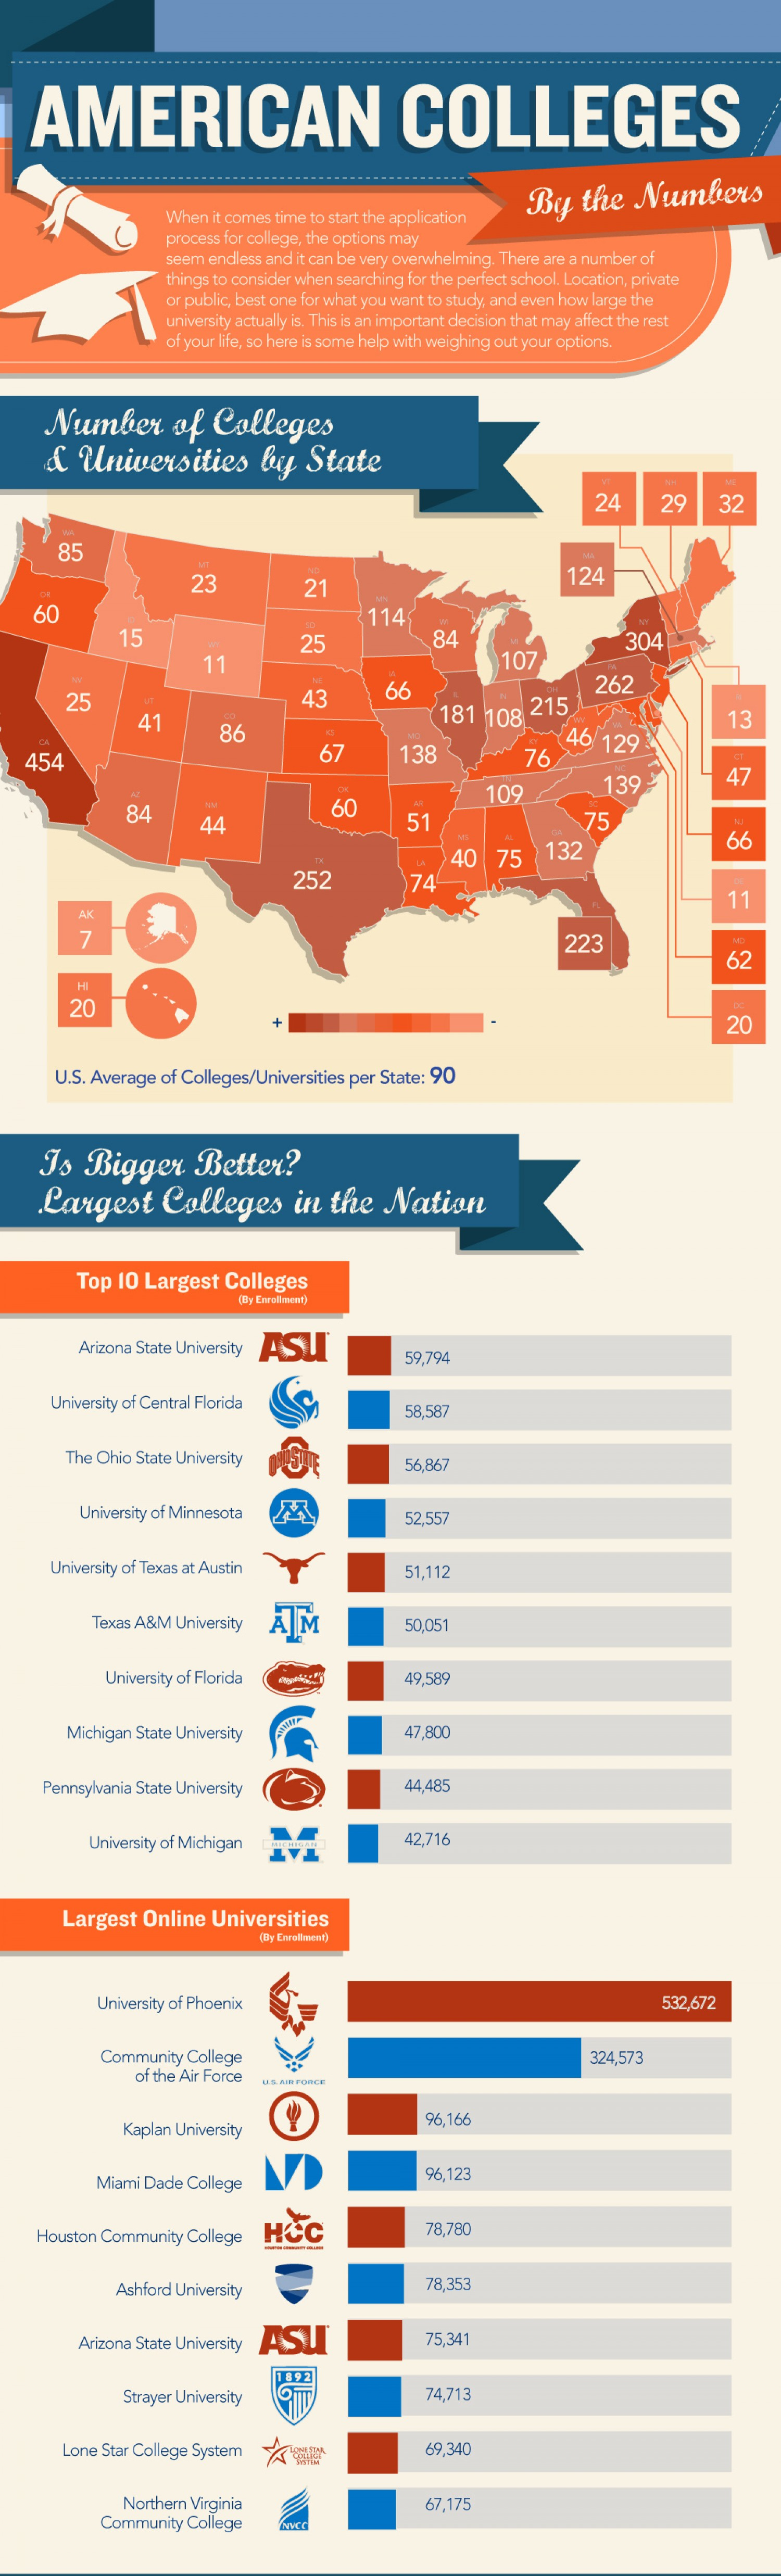 American Colleges and Universities